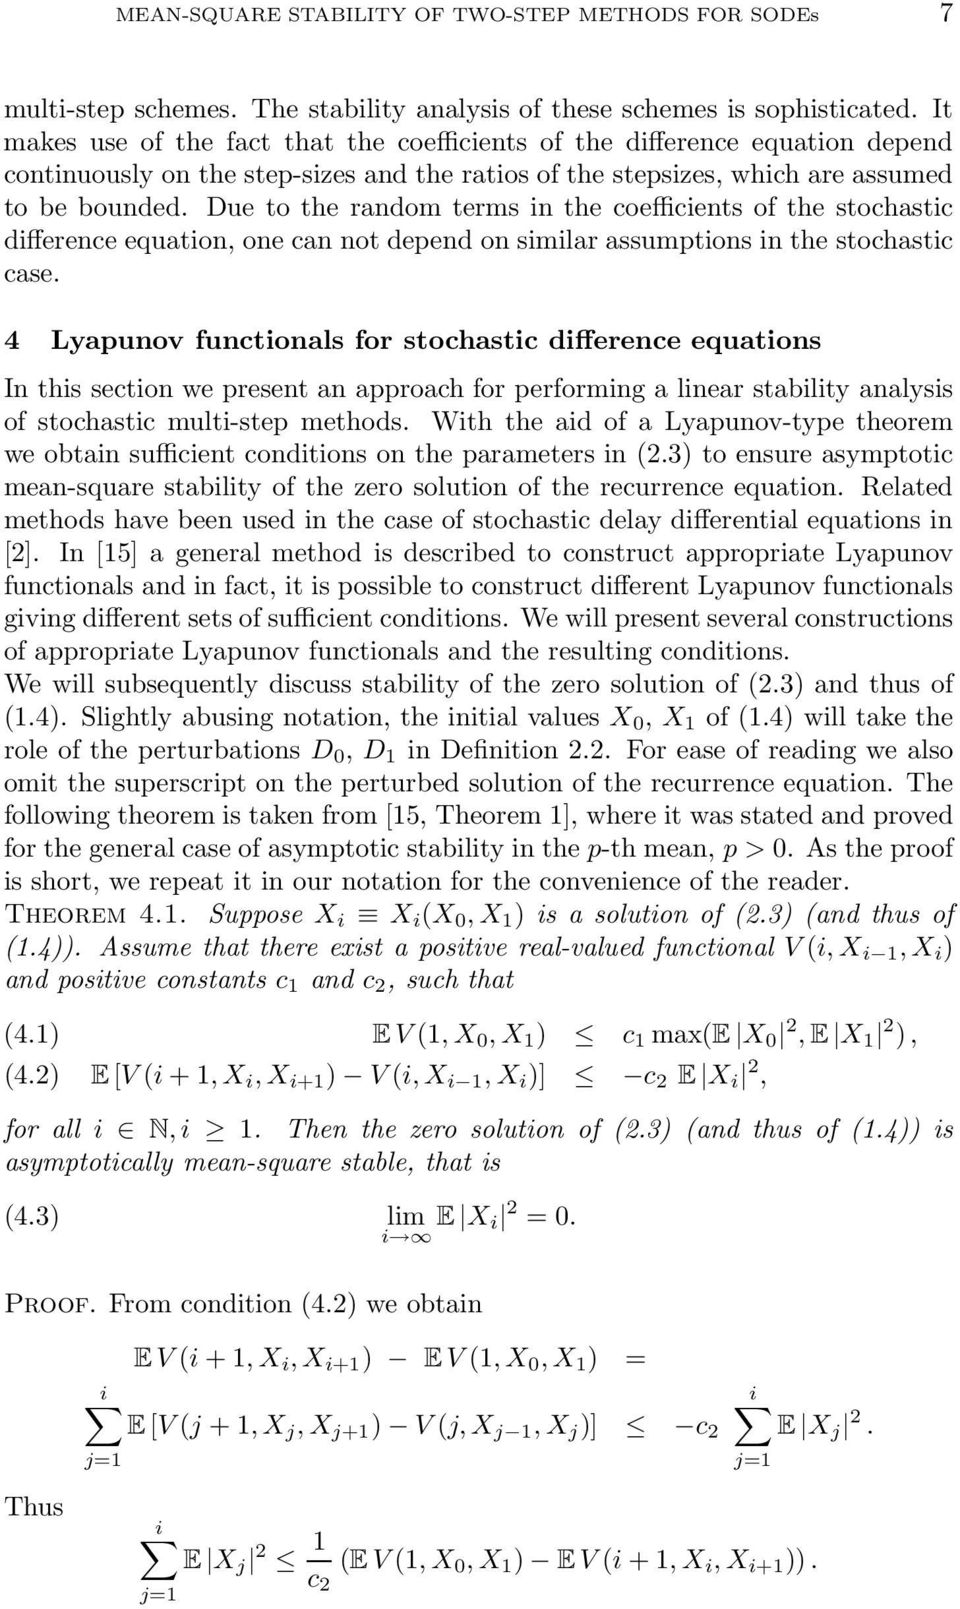 Due to the random terms in the coefficients of the stochastic difference equation, one can not depend on similar assumptions in the stochastic case.